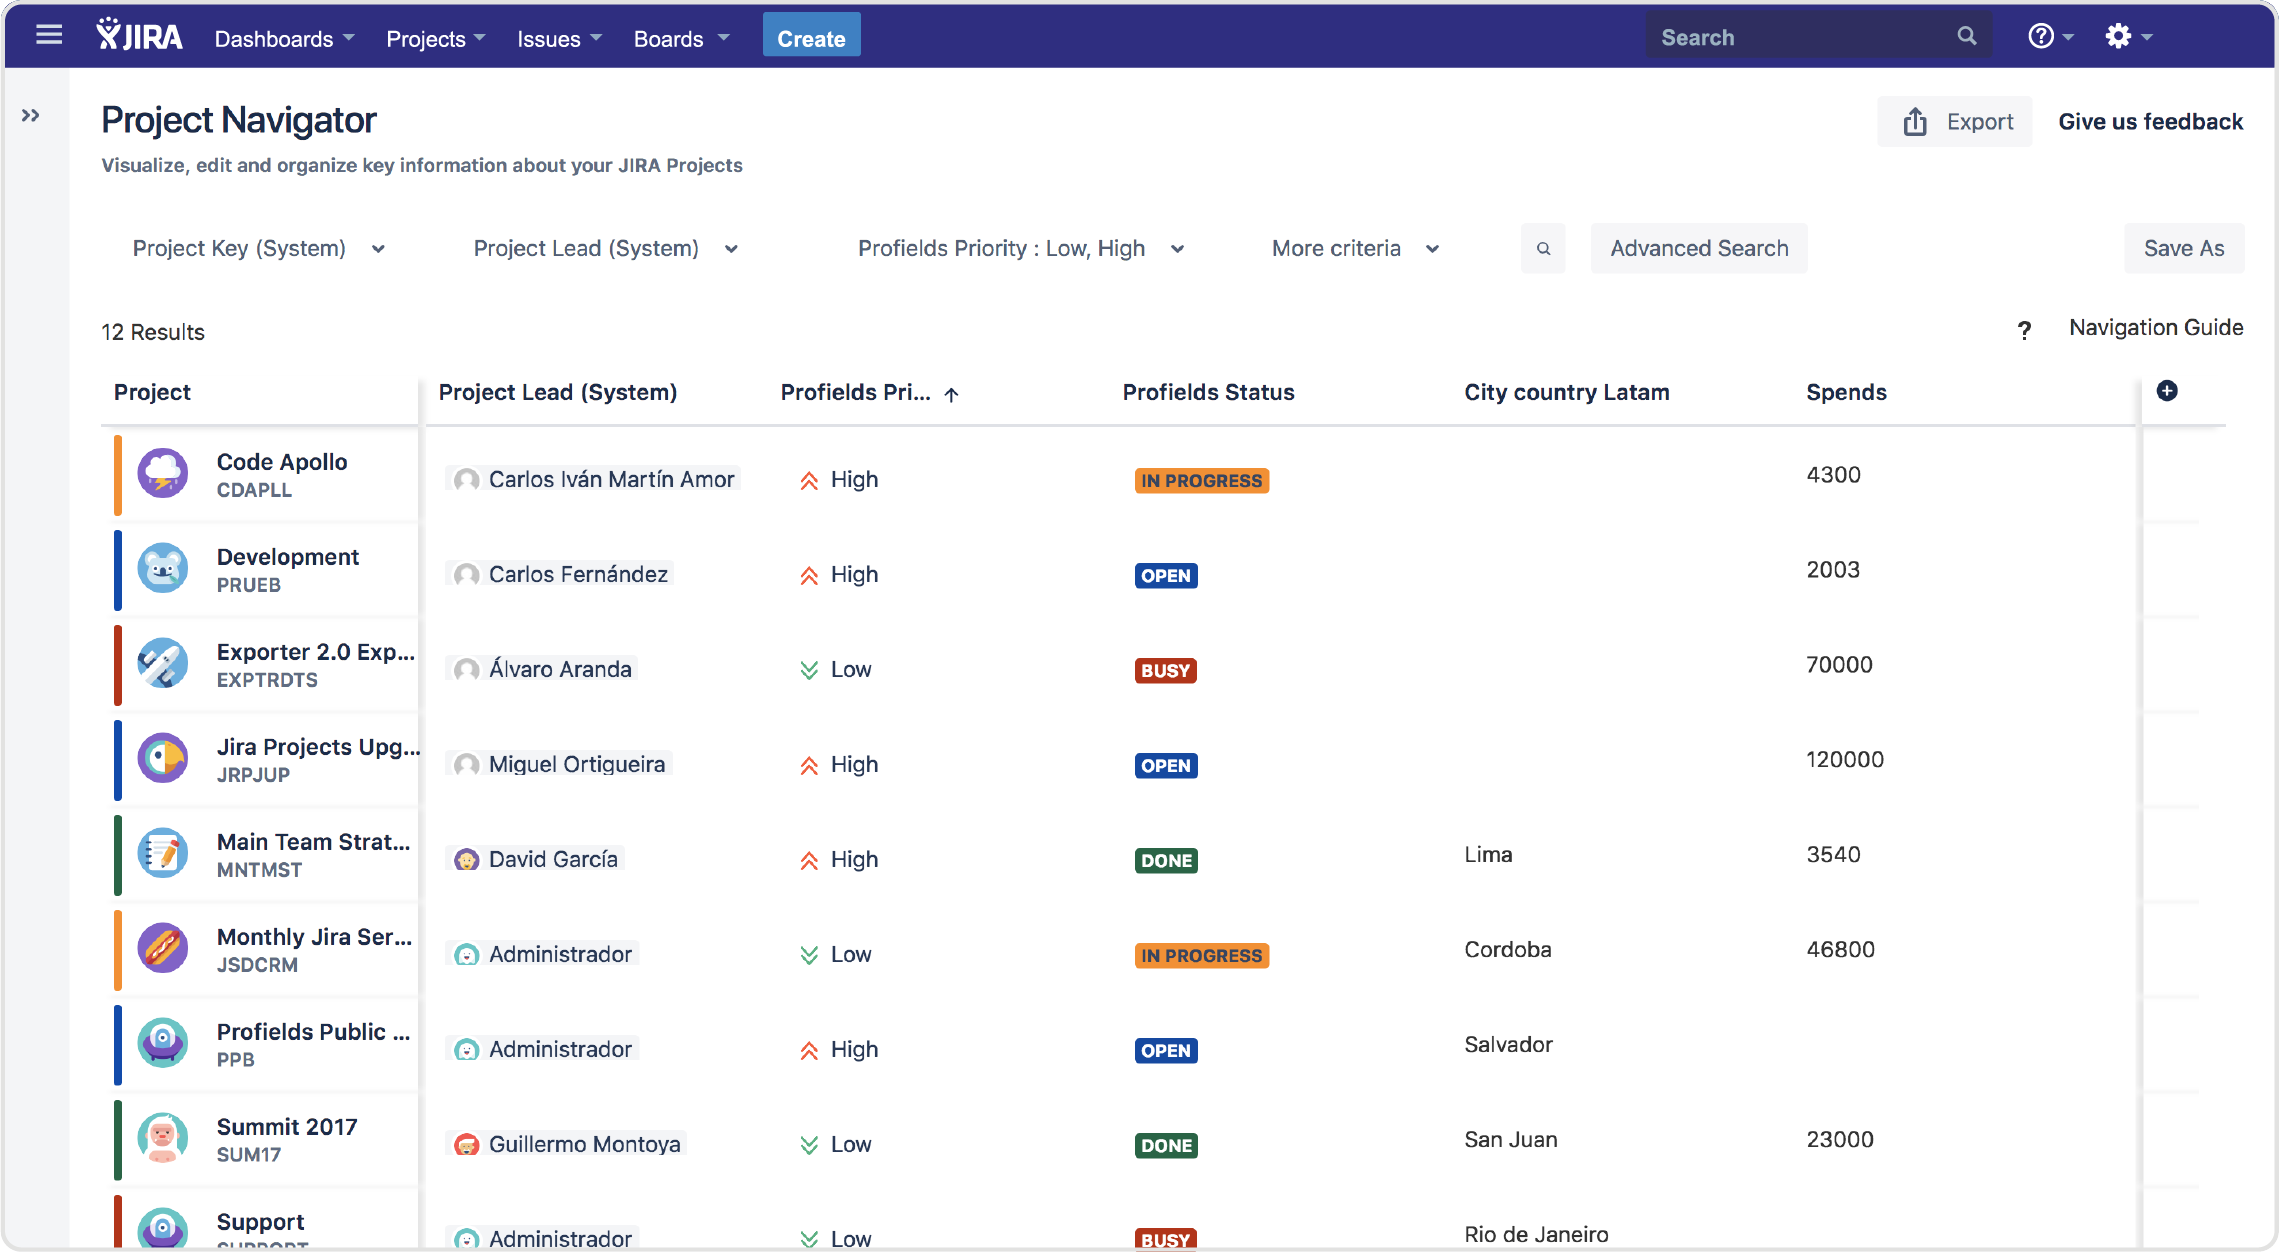 Profields | Jira App | Project searches for Jira